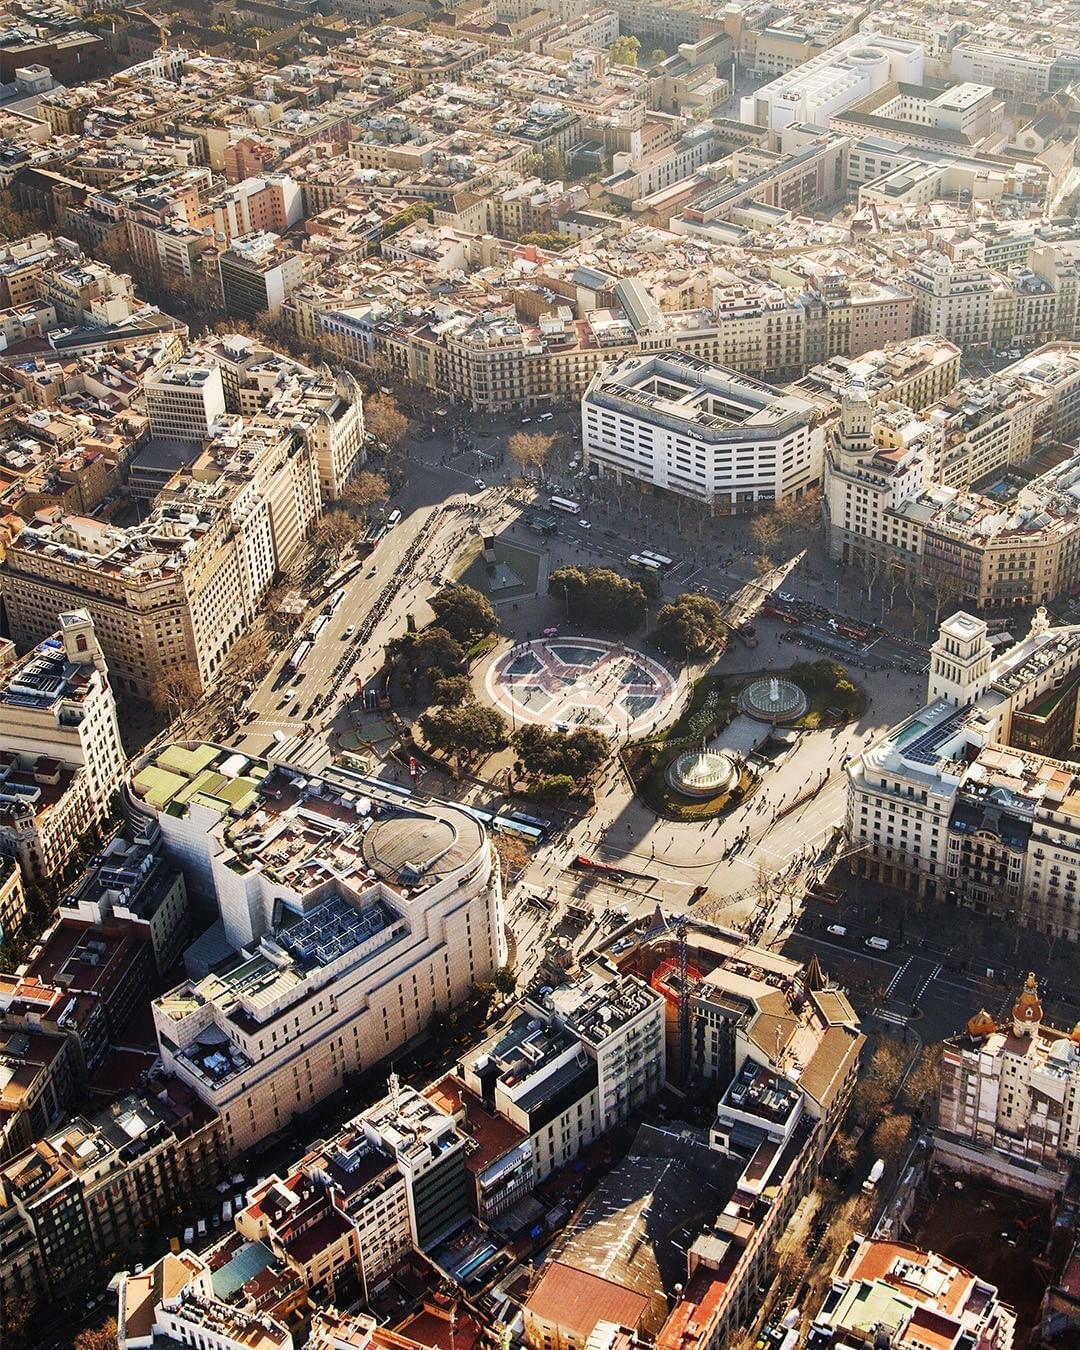 BARCELONA, an active and receptive European city.